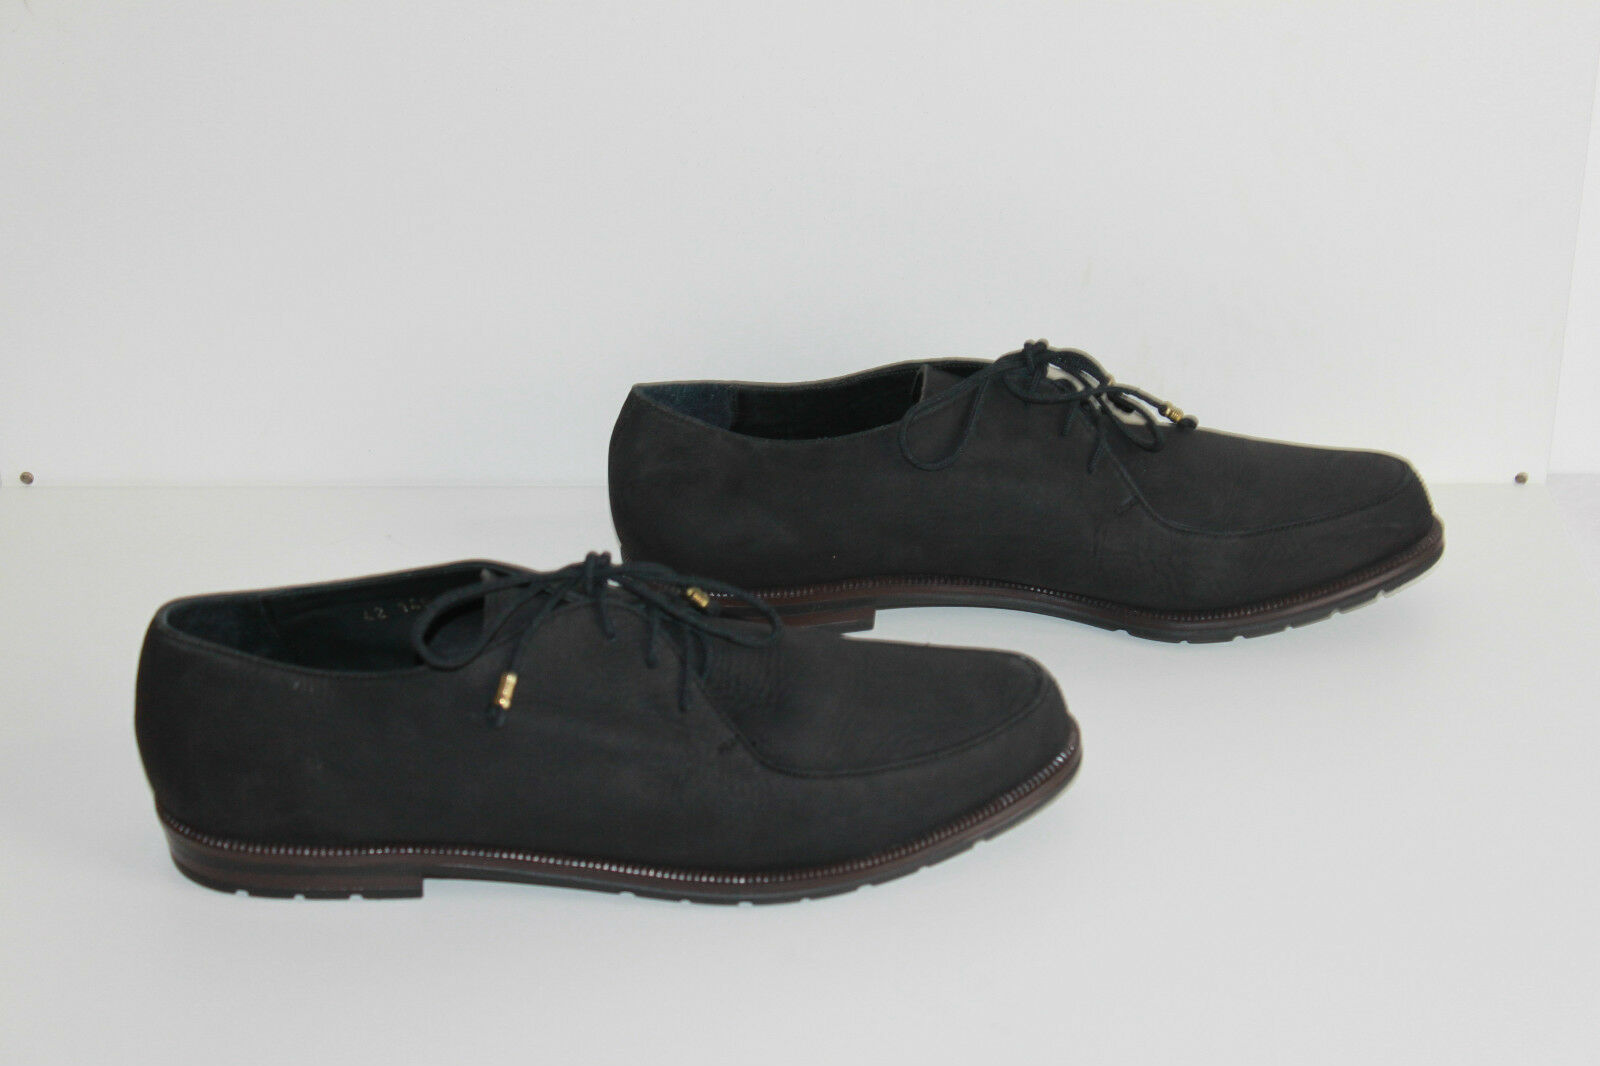 Derby Derby Derby shoes AEROGREEN Black Leather T 42 TOP CONDITION ca14c8